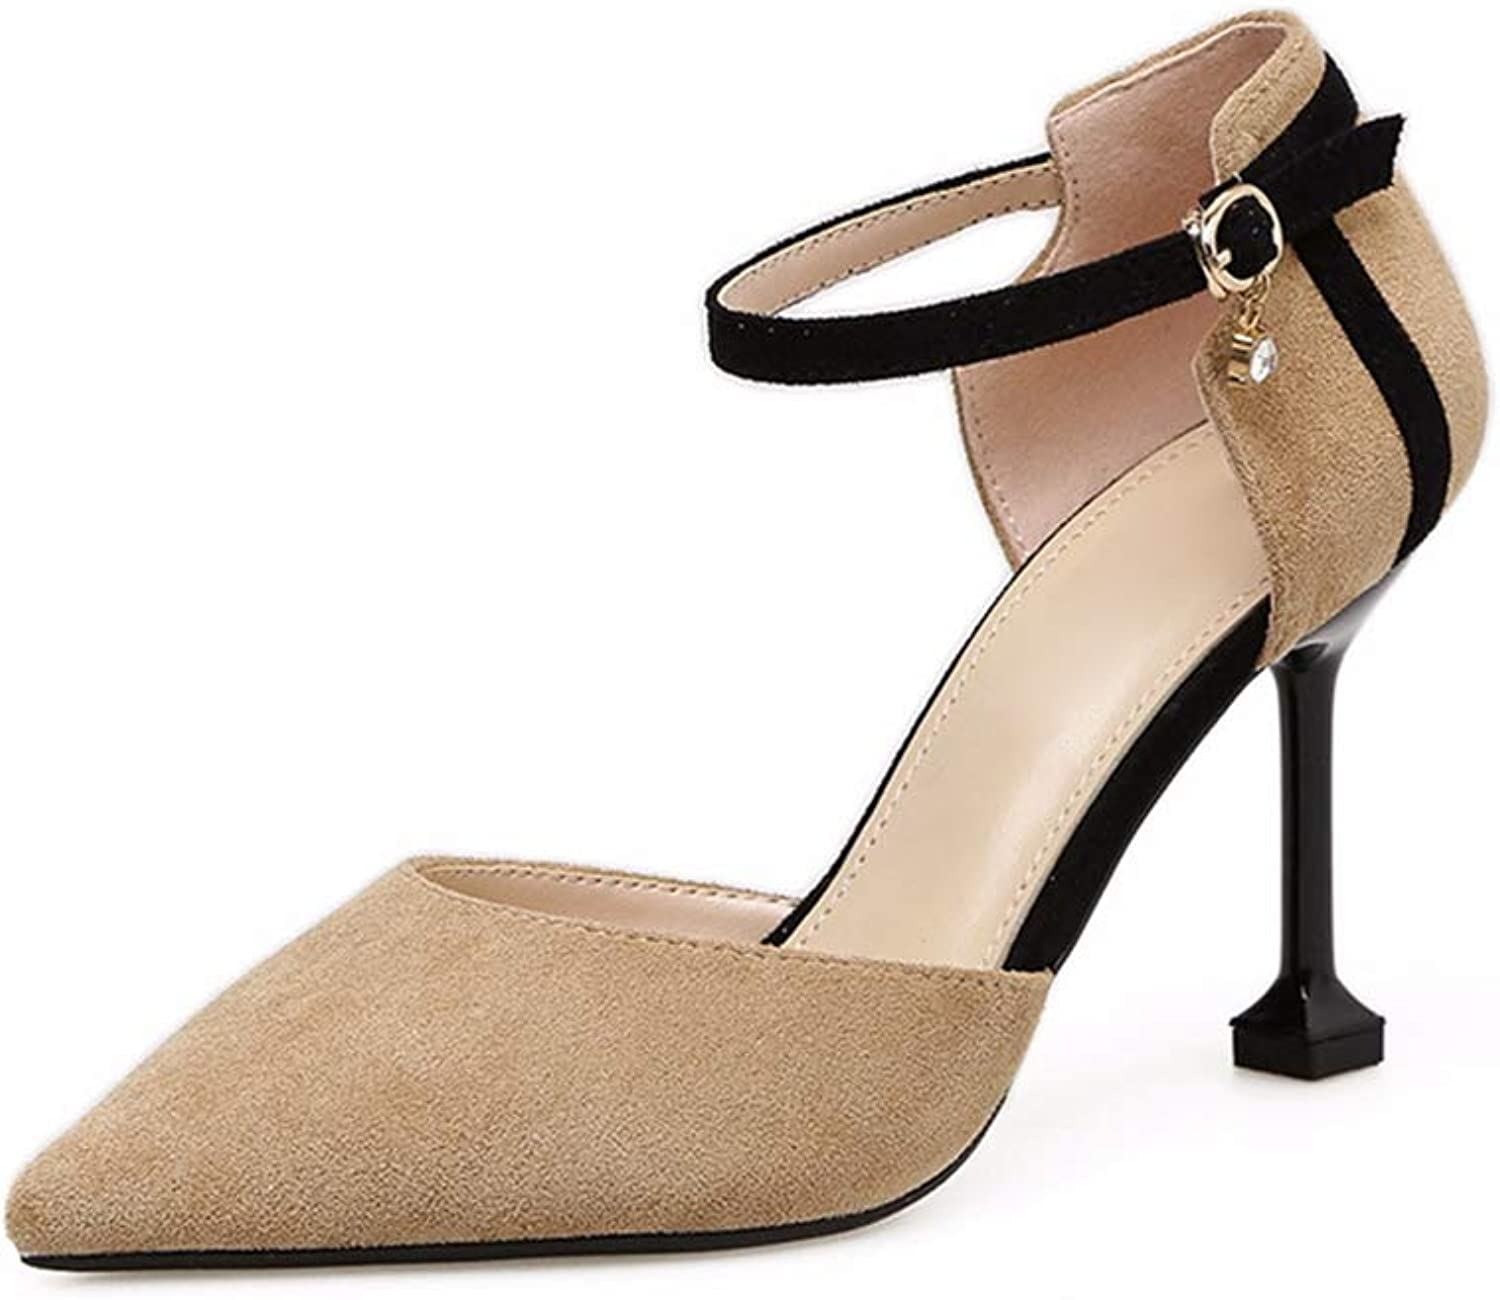 Phil Betty Women's Pumps,Sexy Ankle Buckle Fashion Black Apricot Office High Heels